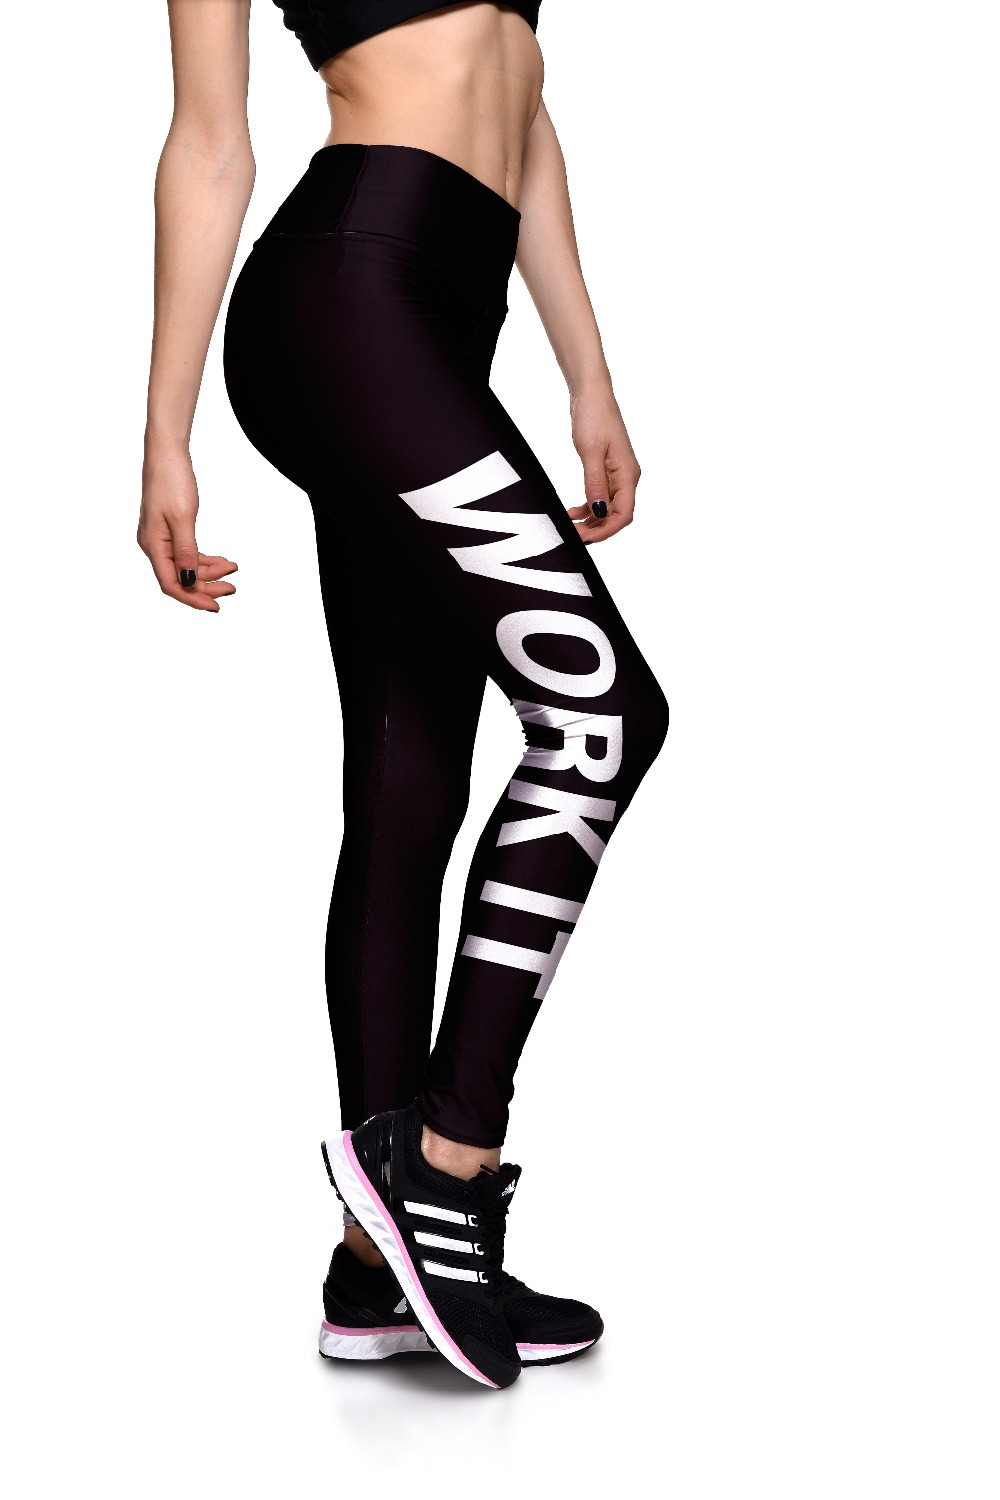 New Design 2 Patterns English Letter Printing Women Plus Size Running Black Pants Sport Grey Yoga Trousers High Waist